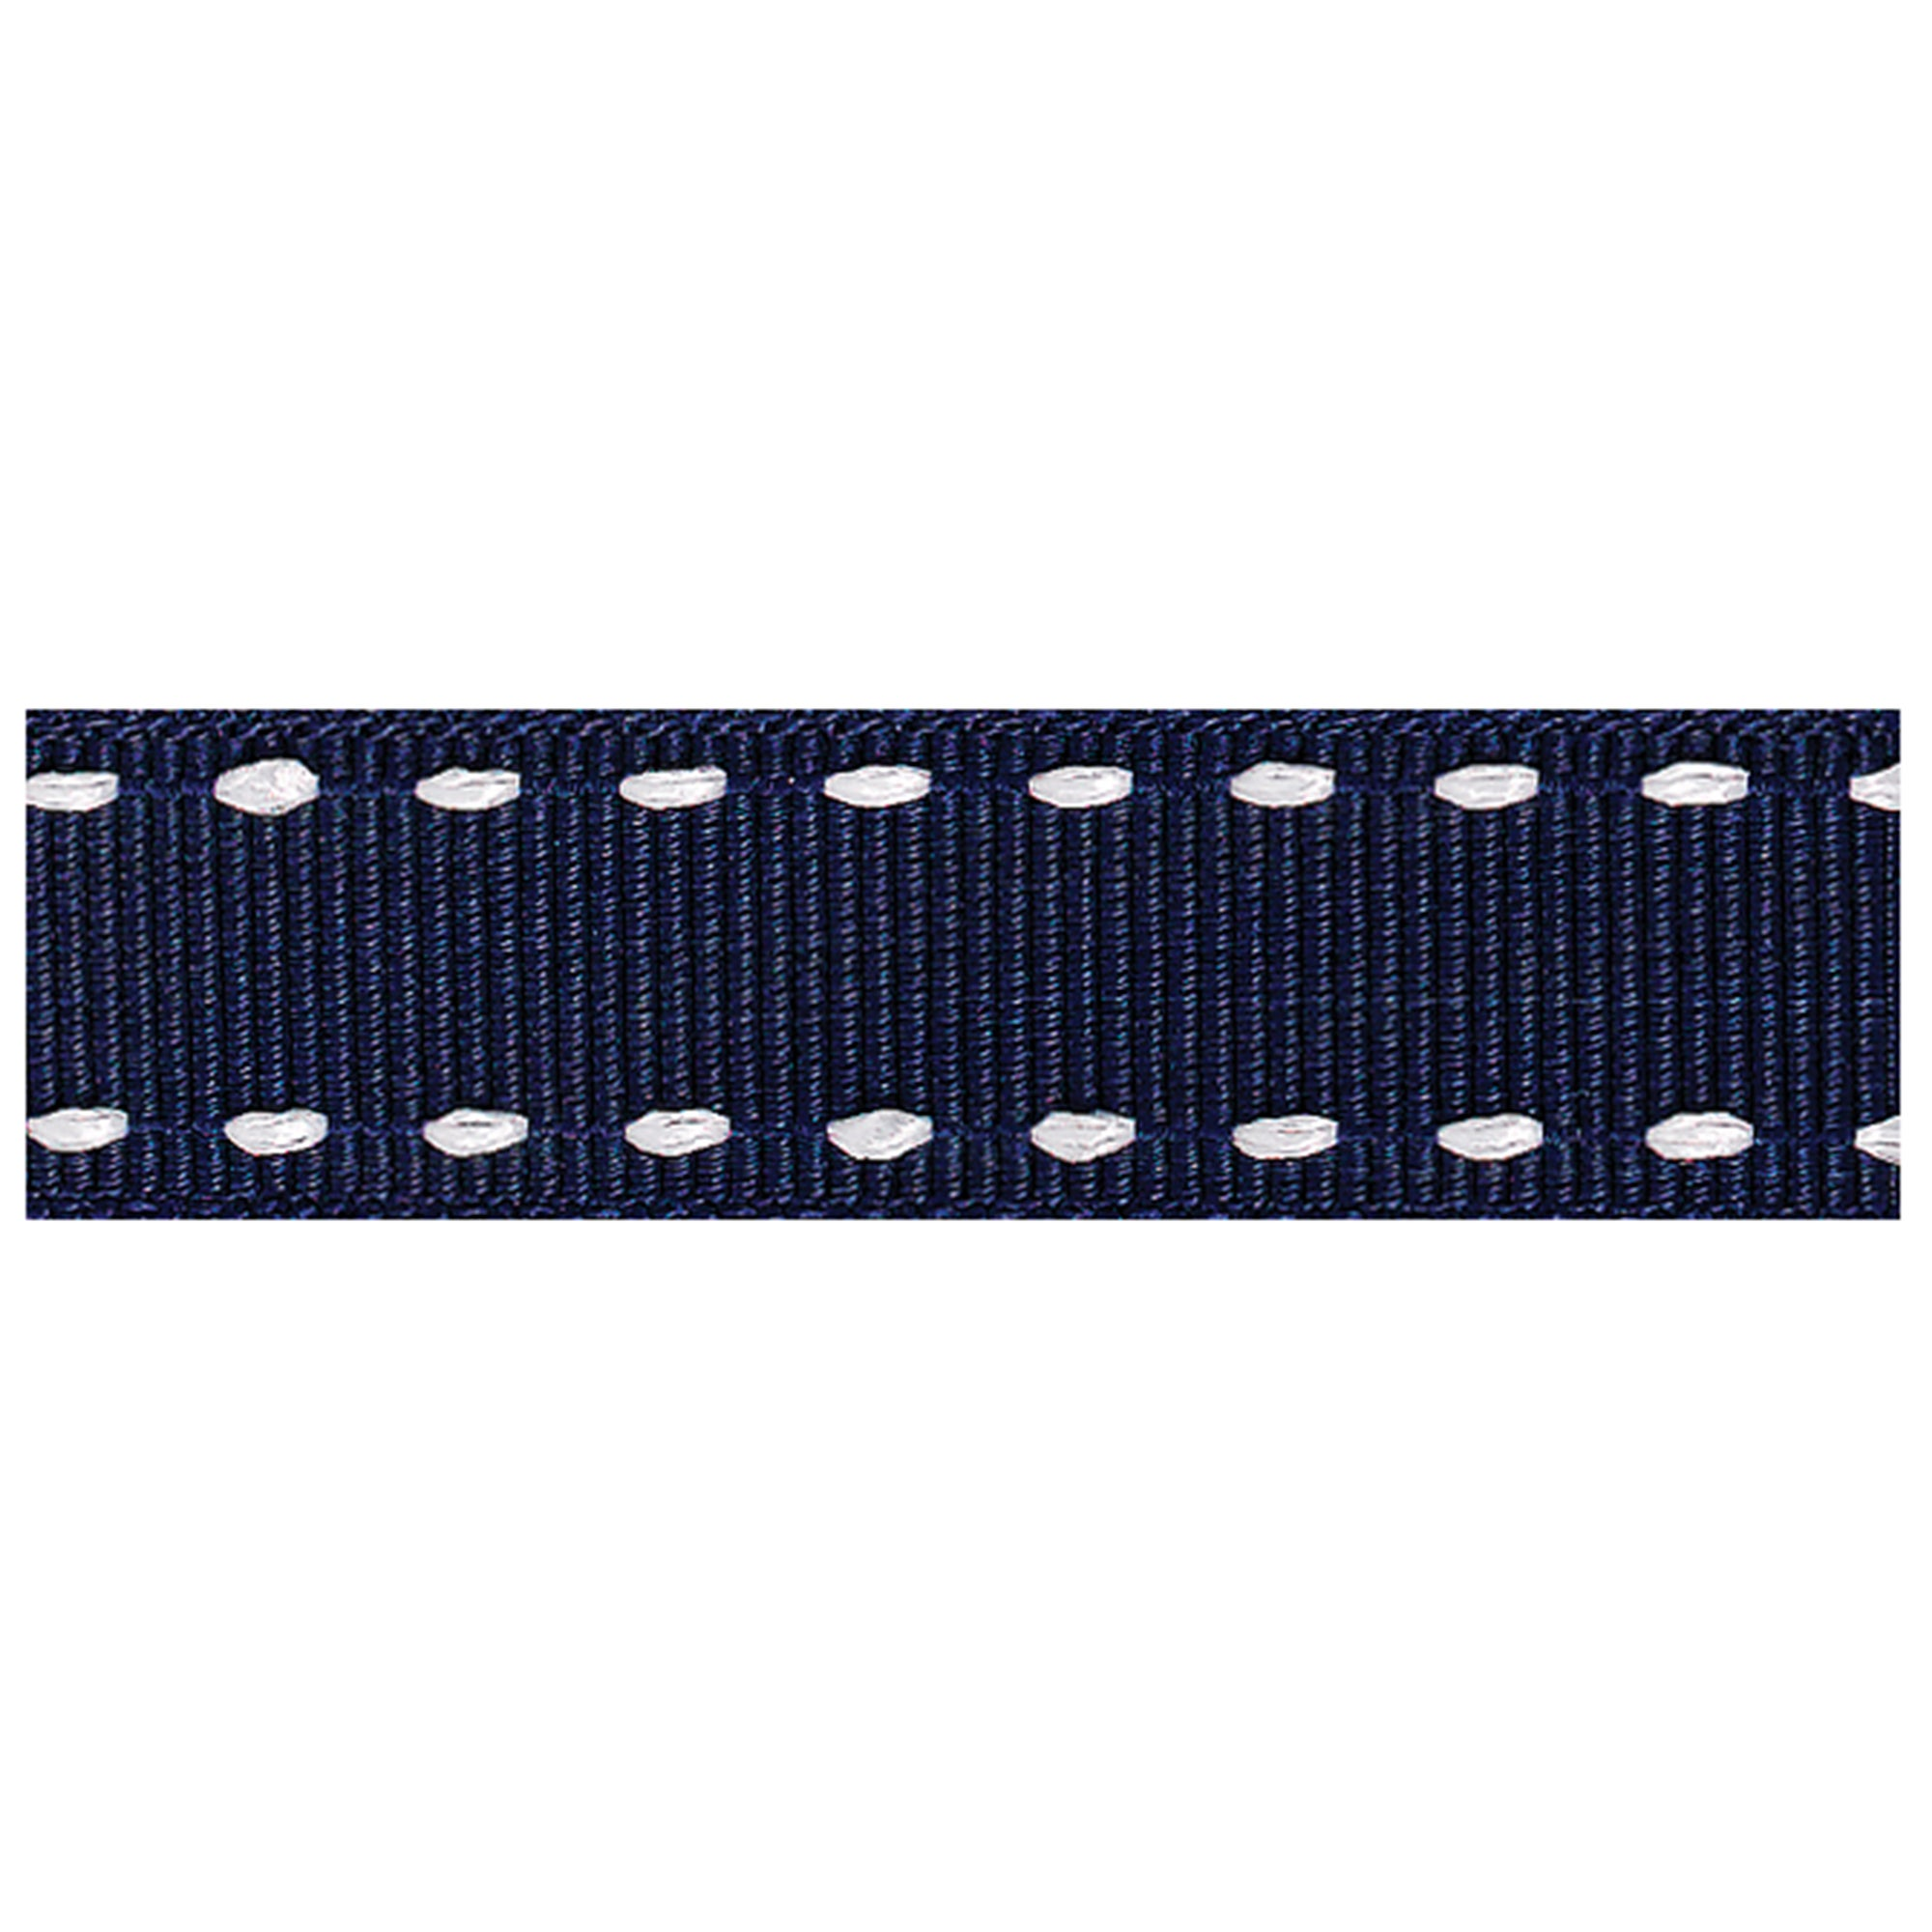 Navy Stitched Grosgrain Ribbon